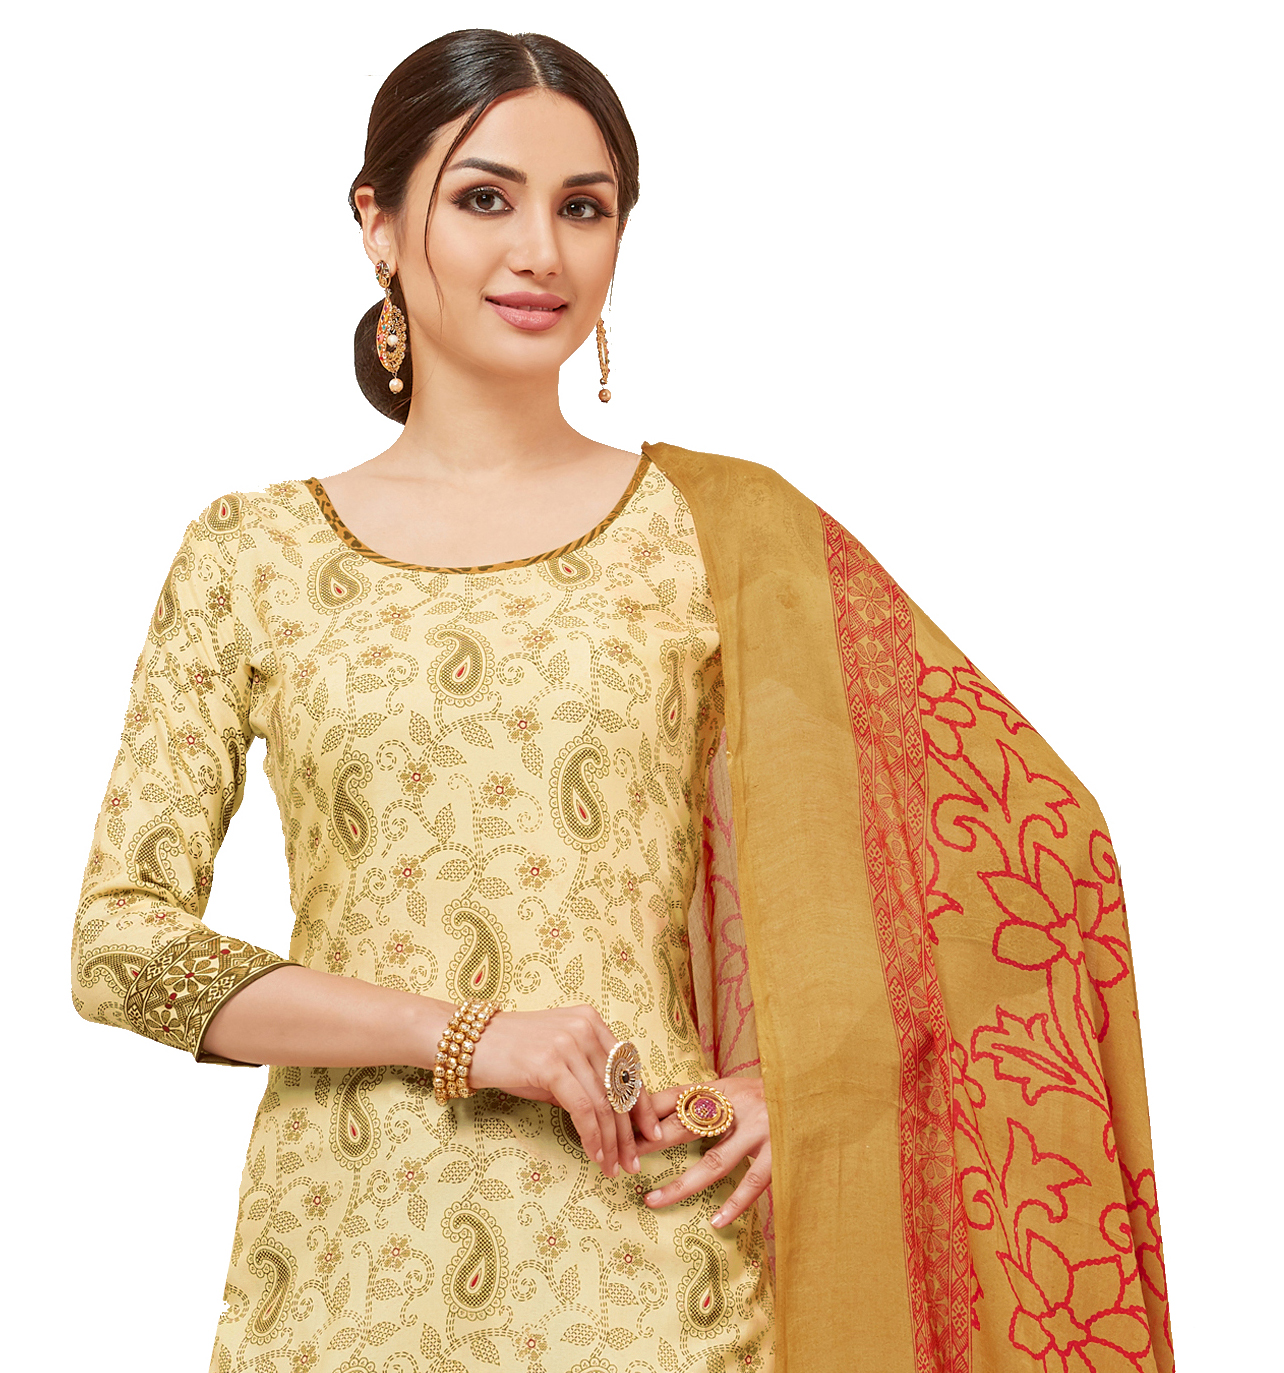 Viva N Diva Cream Colored Cotton Printed Salwar Suit Dress Material